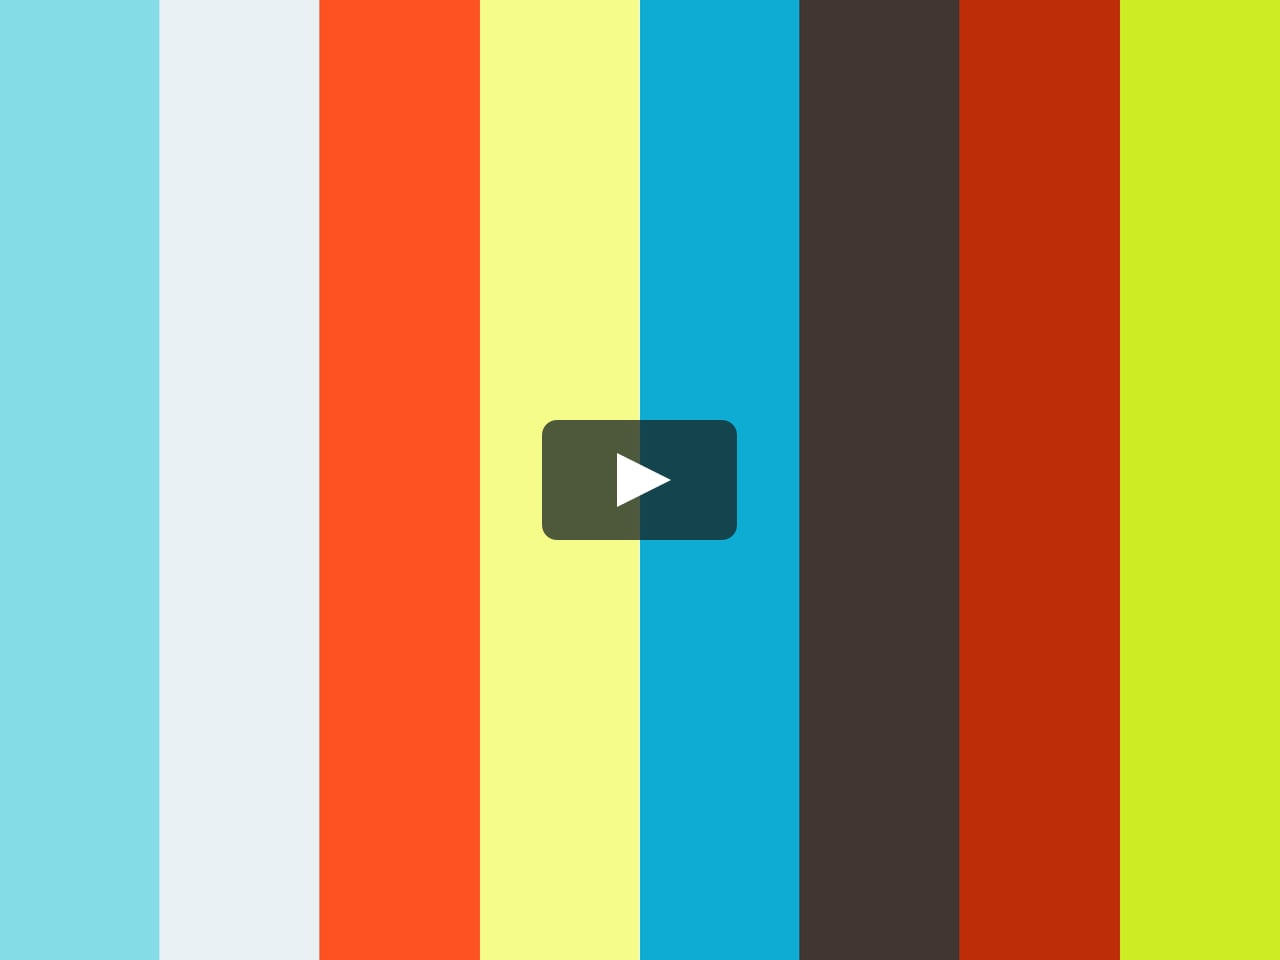 Microsoft Dynamics Ax Training Philippines On Vimeo